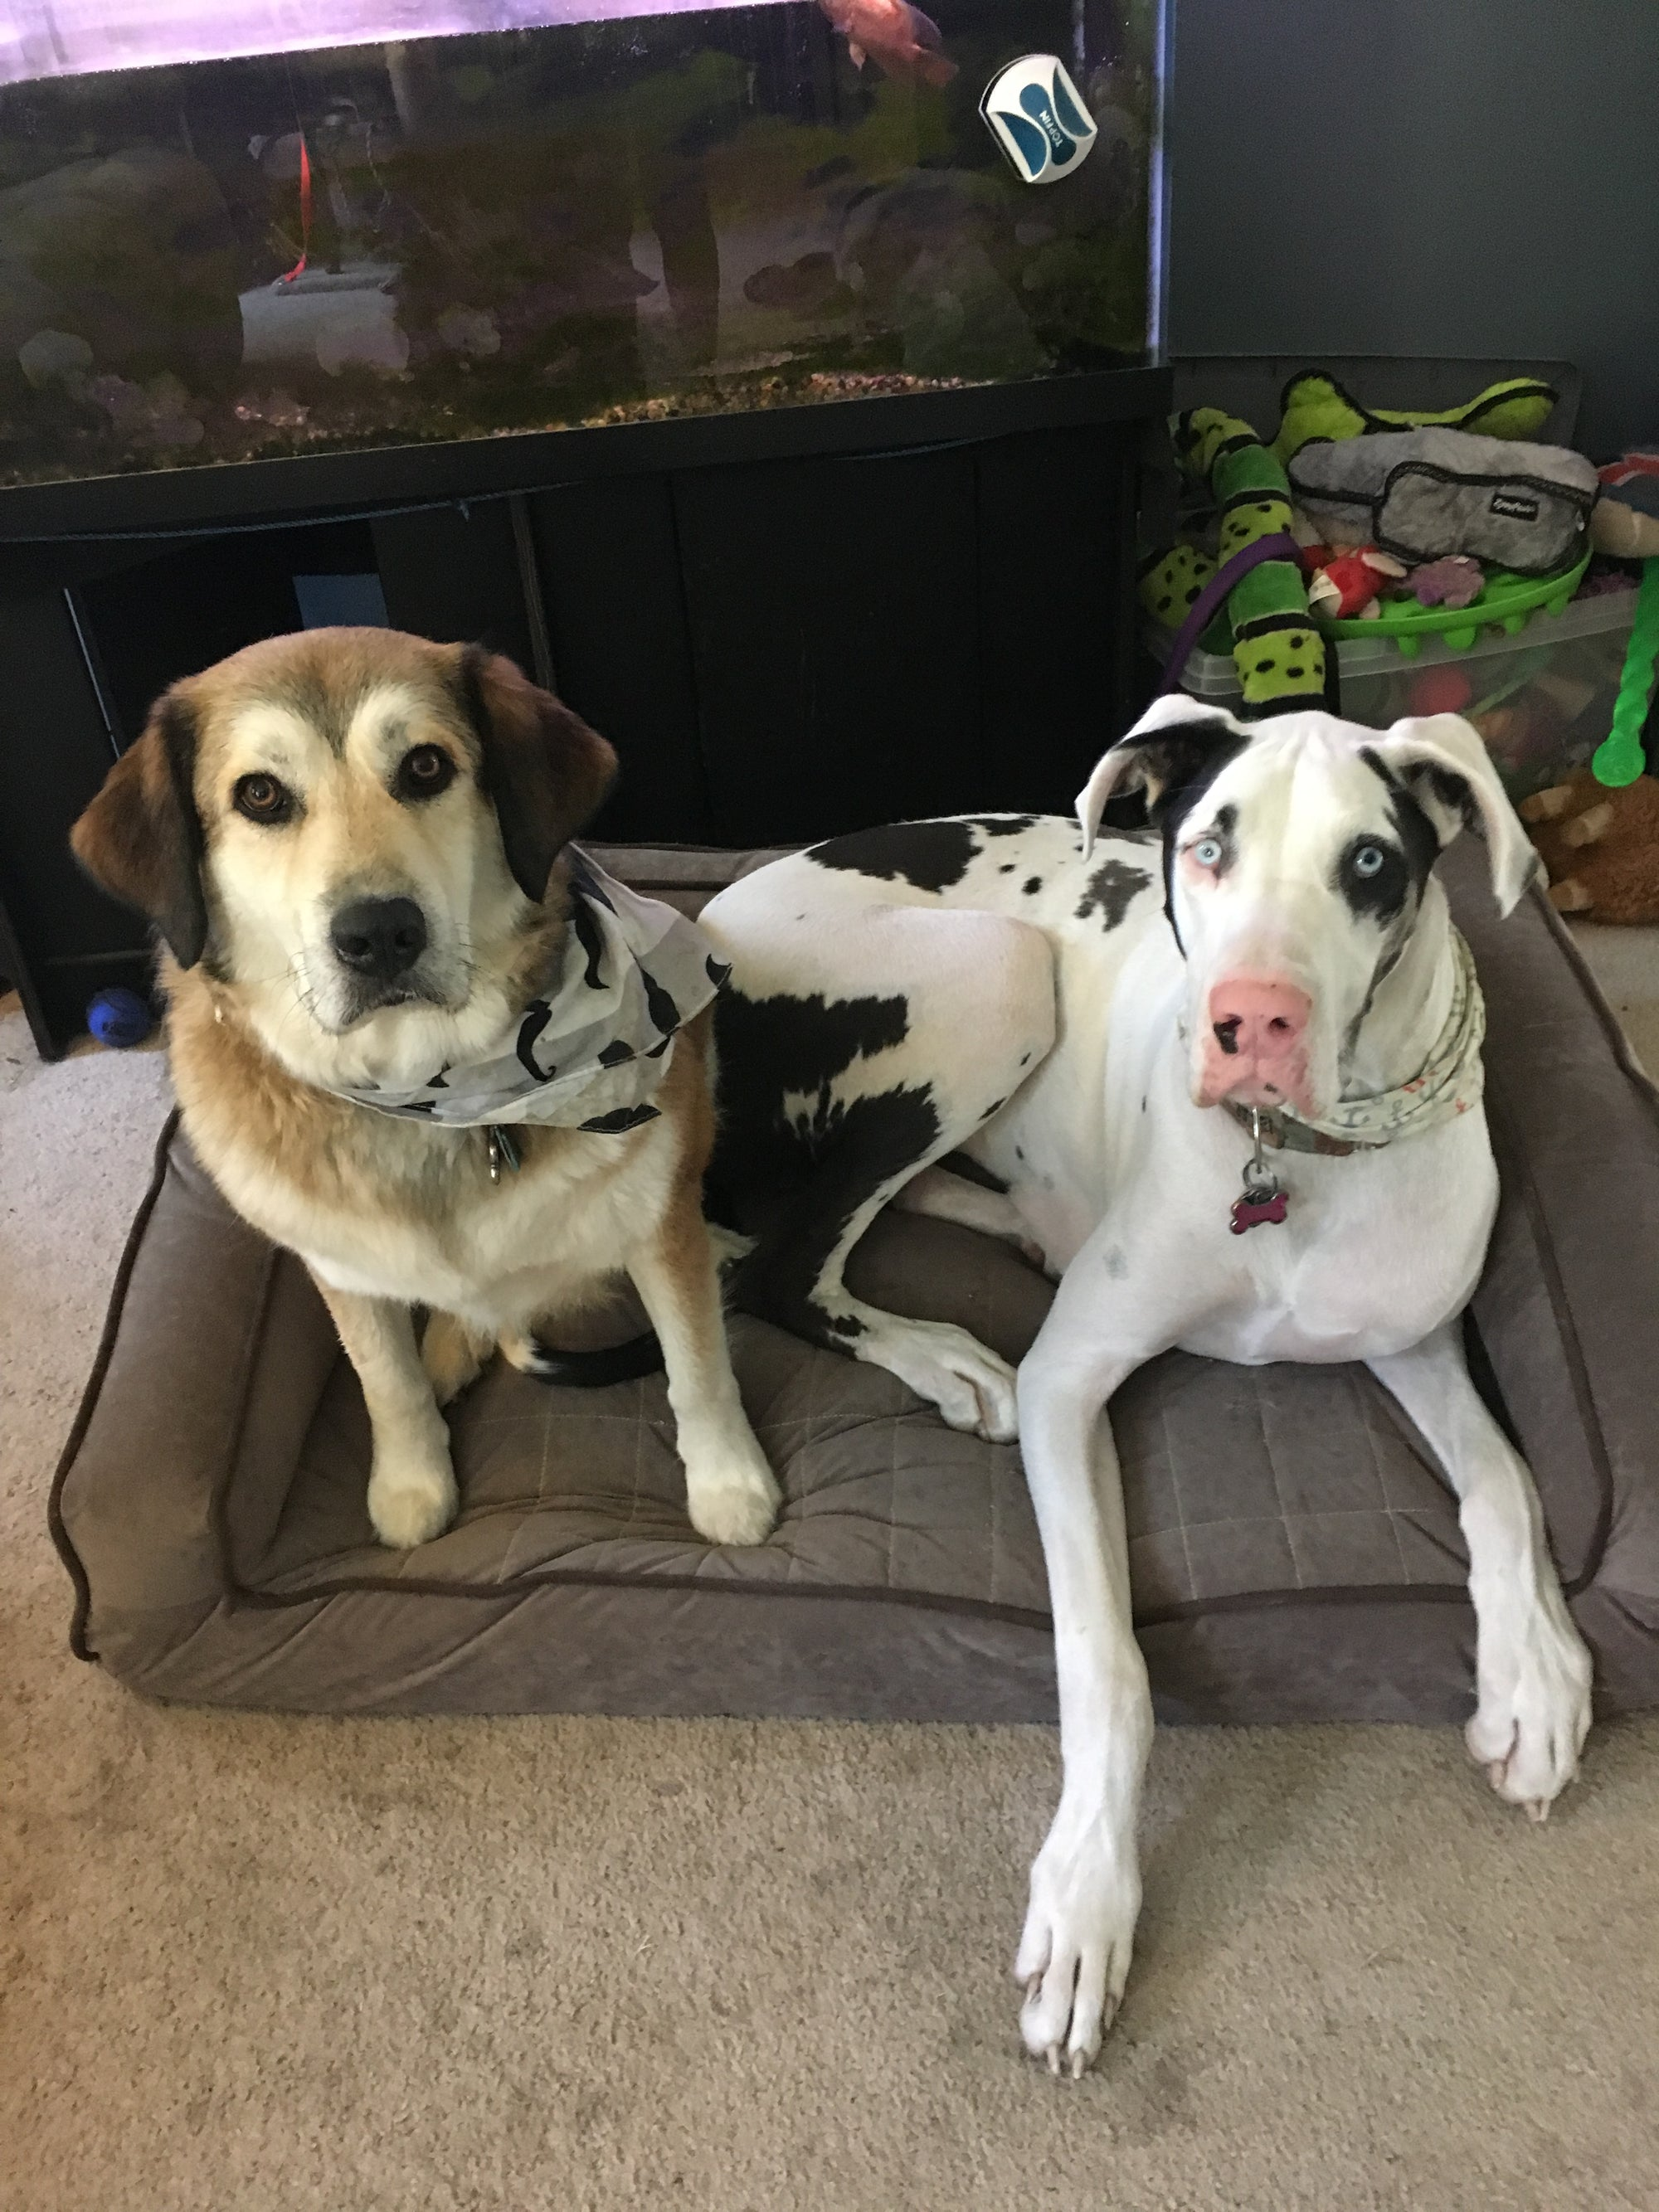 brown and white dog and black and white dog both sitting on a mocha buddyrest crown supreme dog bed